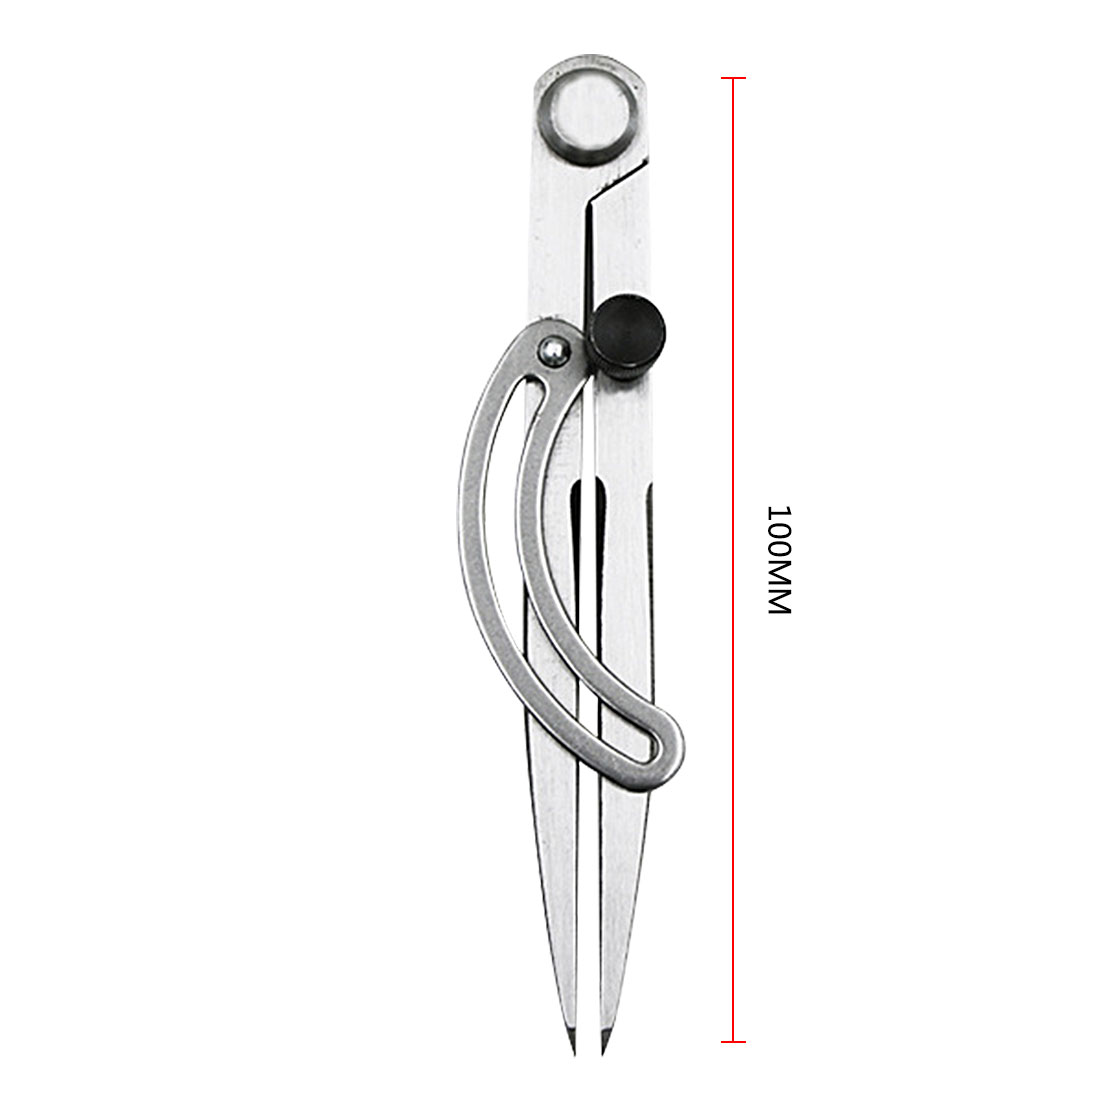 Wing Divider Spacing Compasses Edge Creaser Furniture DIY Home Sewing Handmade Tool Leather Craft Making Rotating ToolWing Divider Spacing Compasses Edge Creaser Furniture DIY Home Sewing Handmade Tool Leather Craft Making Rotating Tool